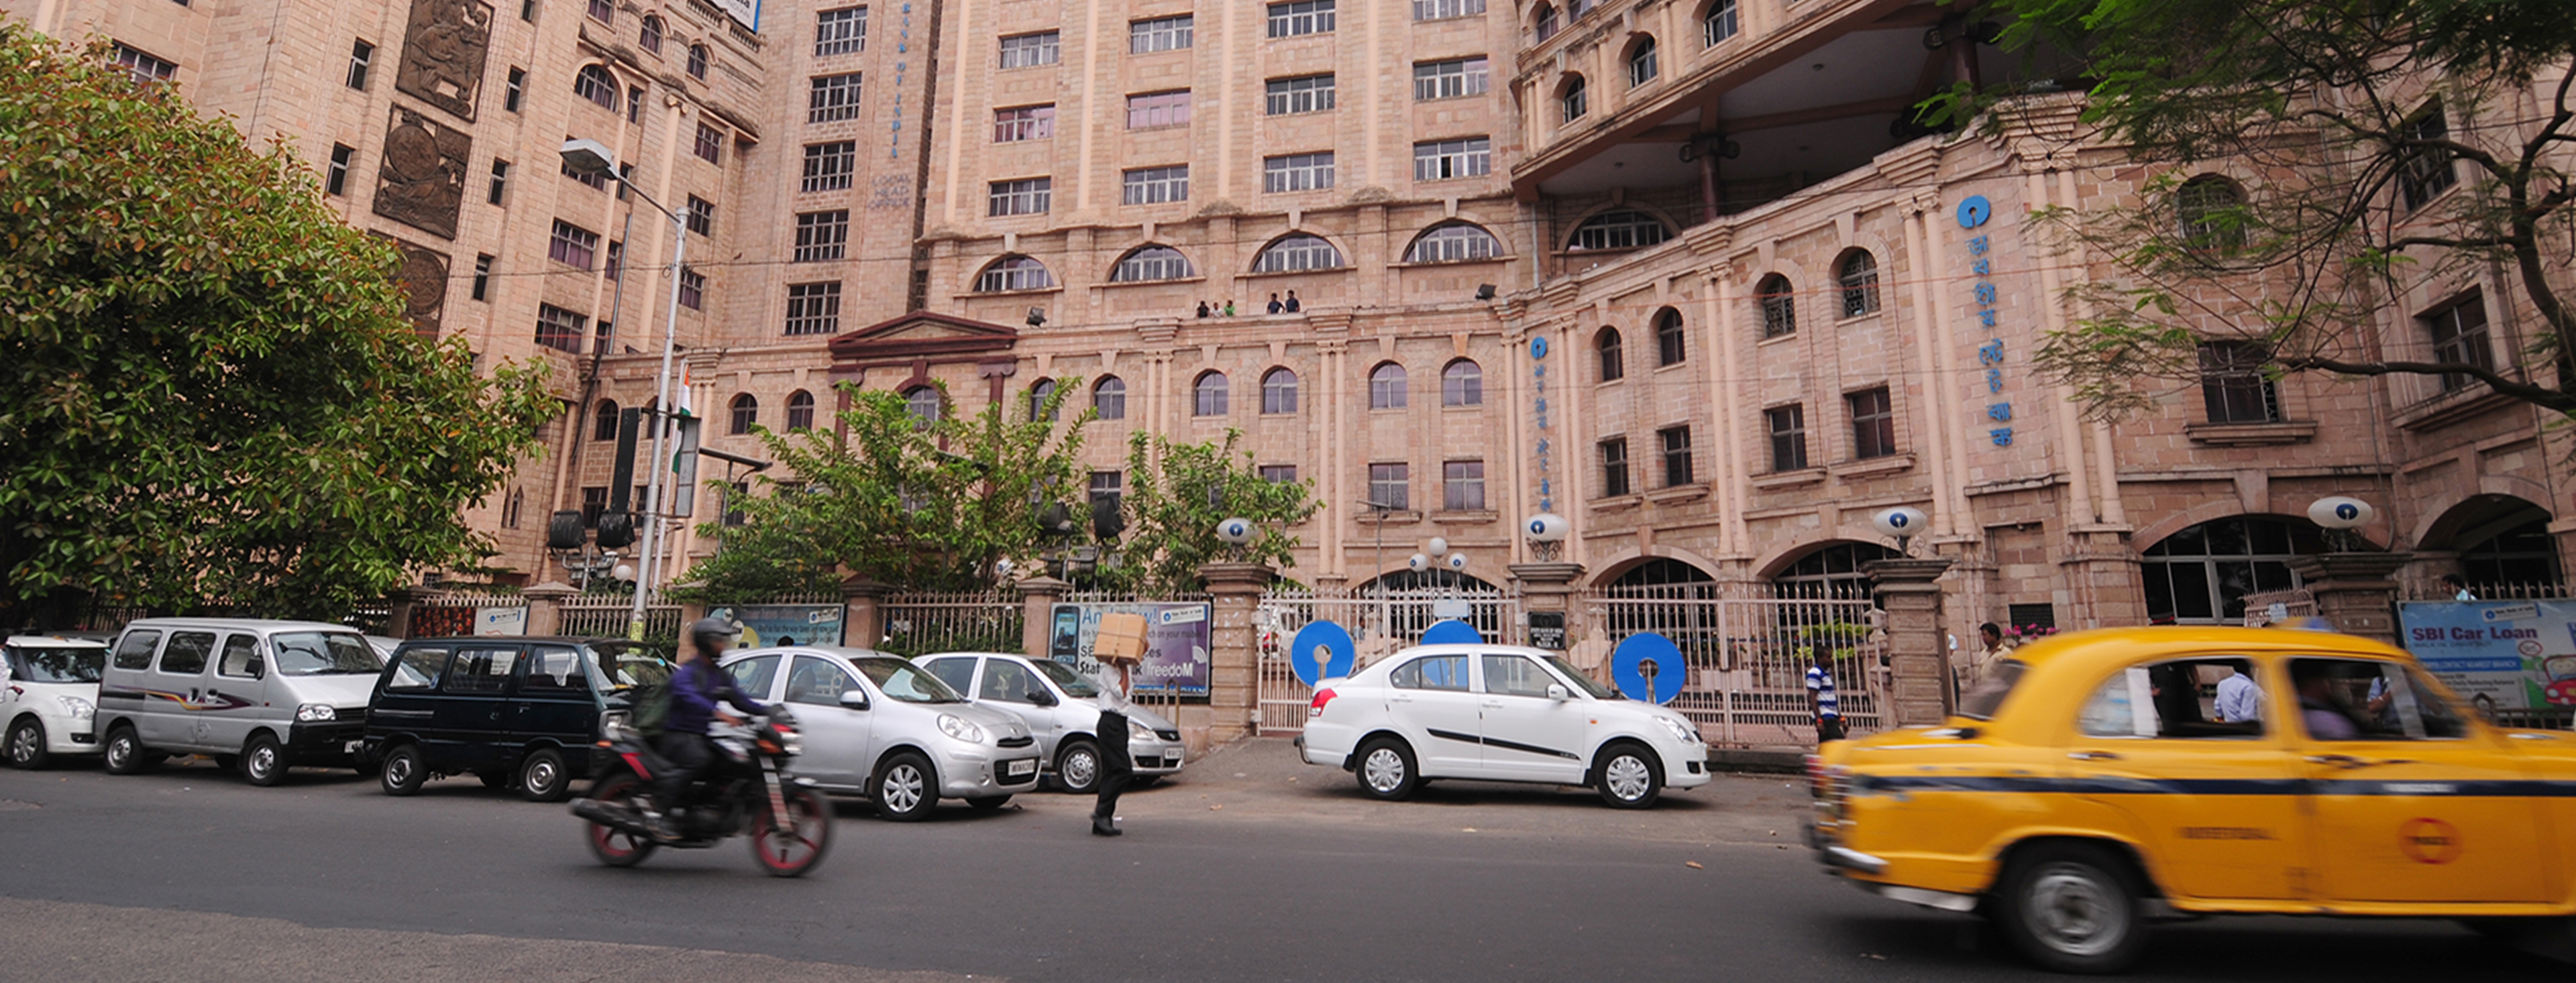 Head Office Of State Bank Of India Building